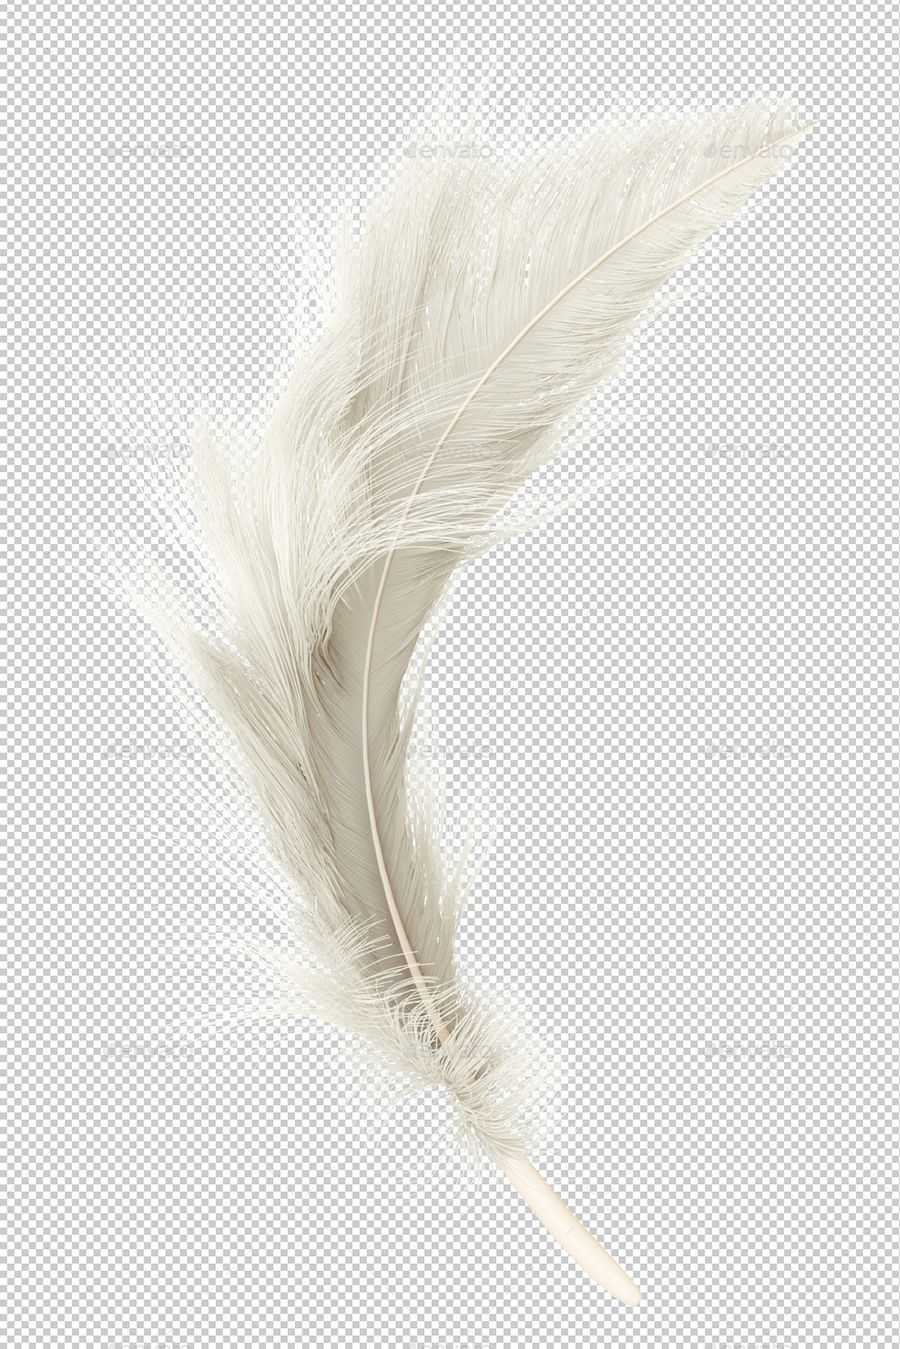 Transparent Png Feathers Feather Png Free Business Card Templates